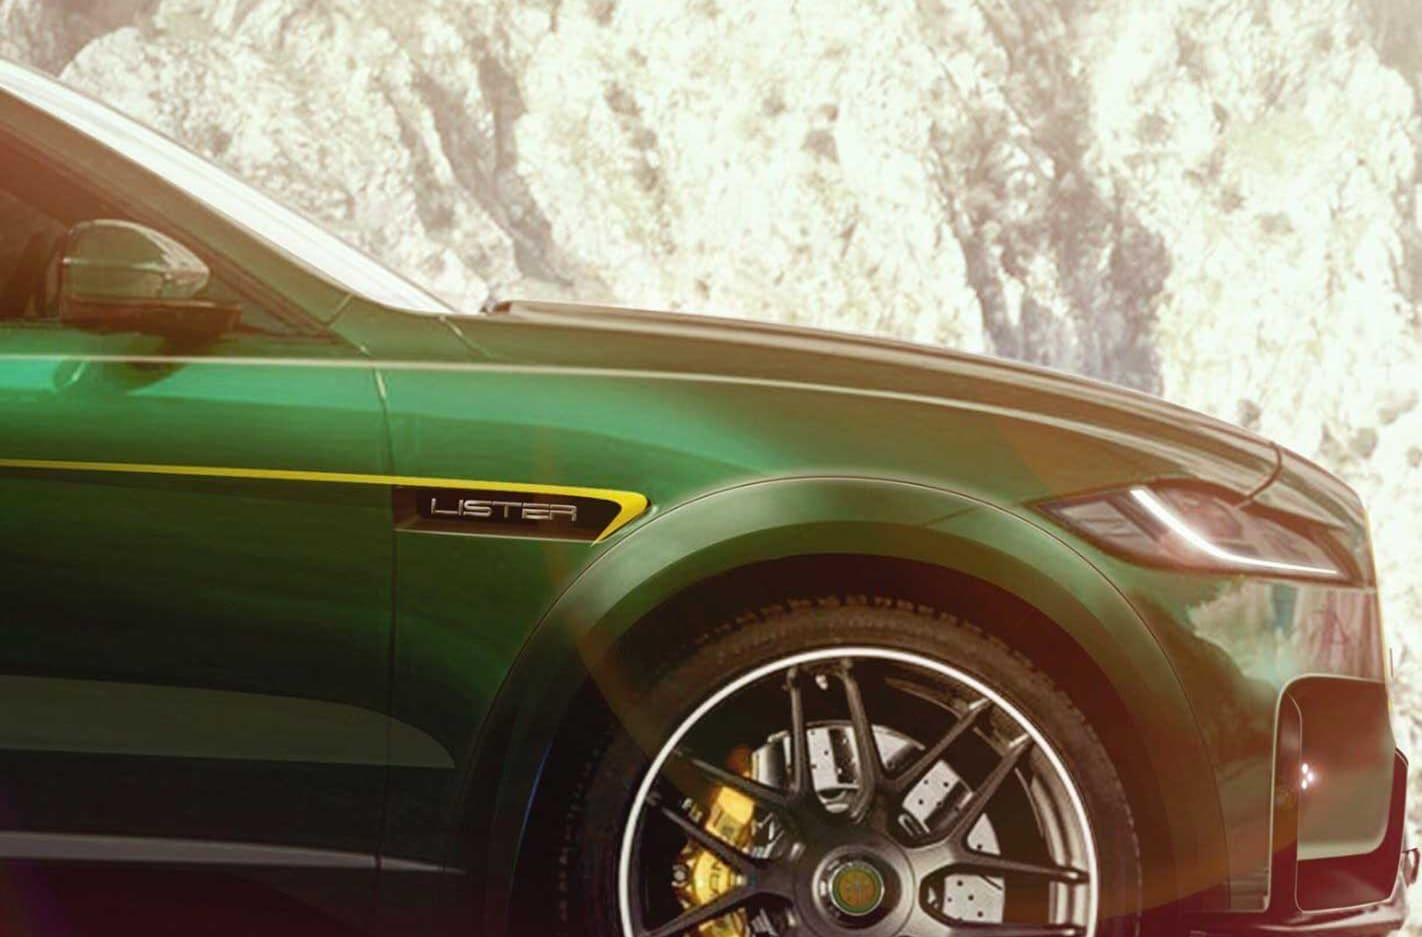 Lister to reveal Worlds fastest SUV